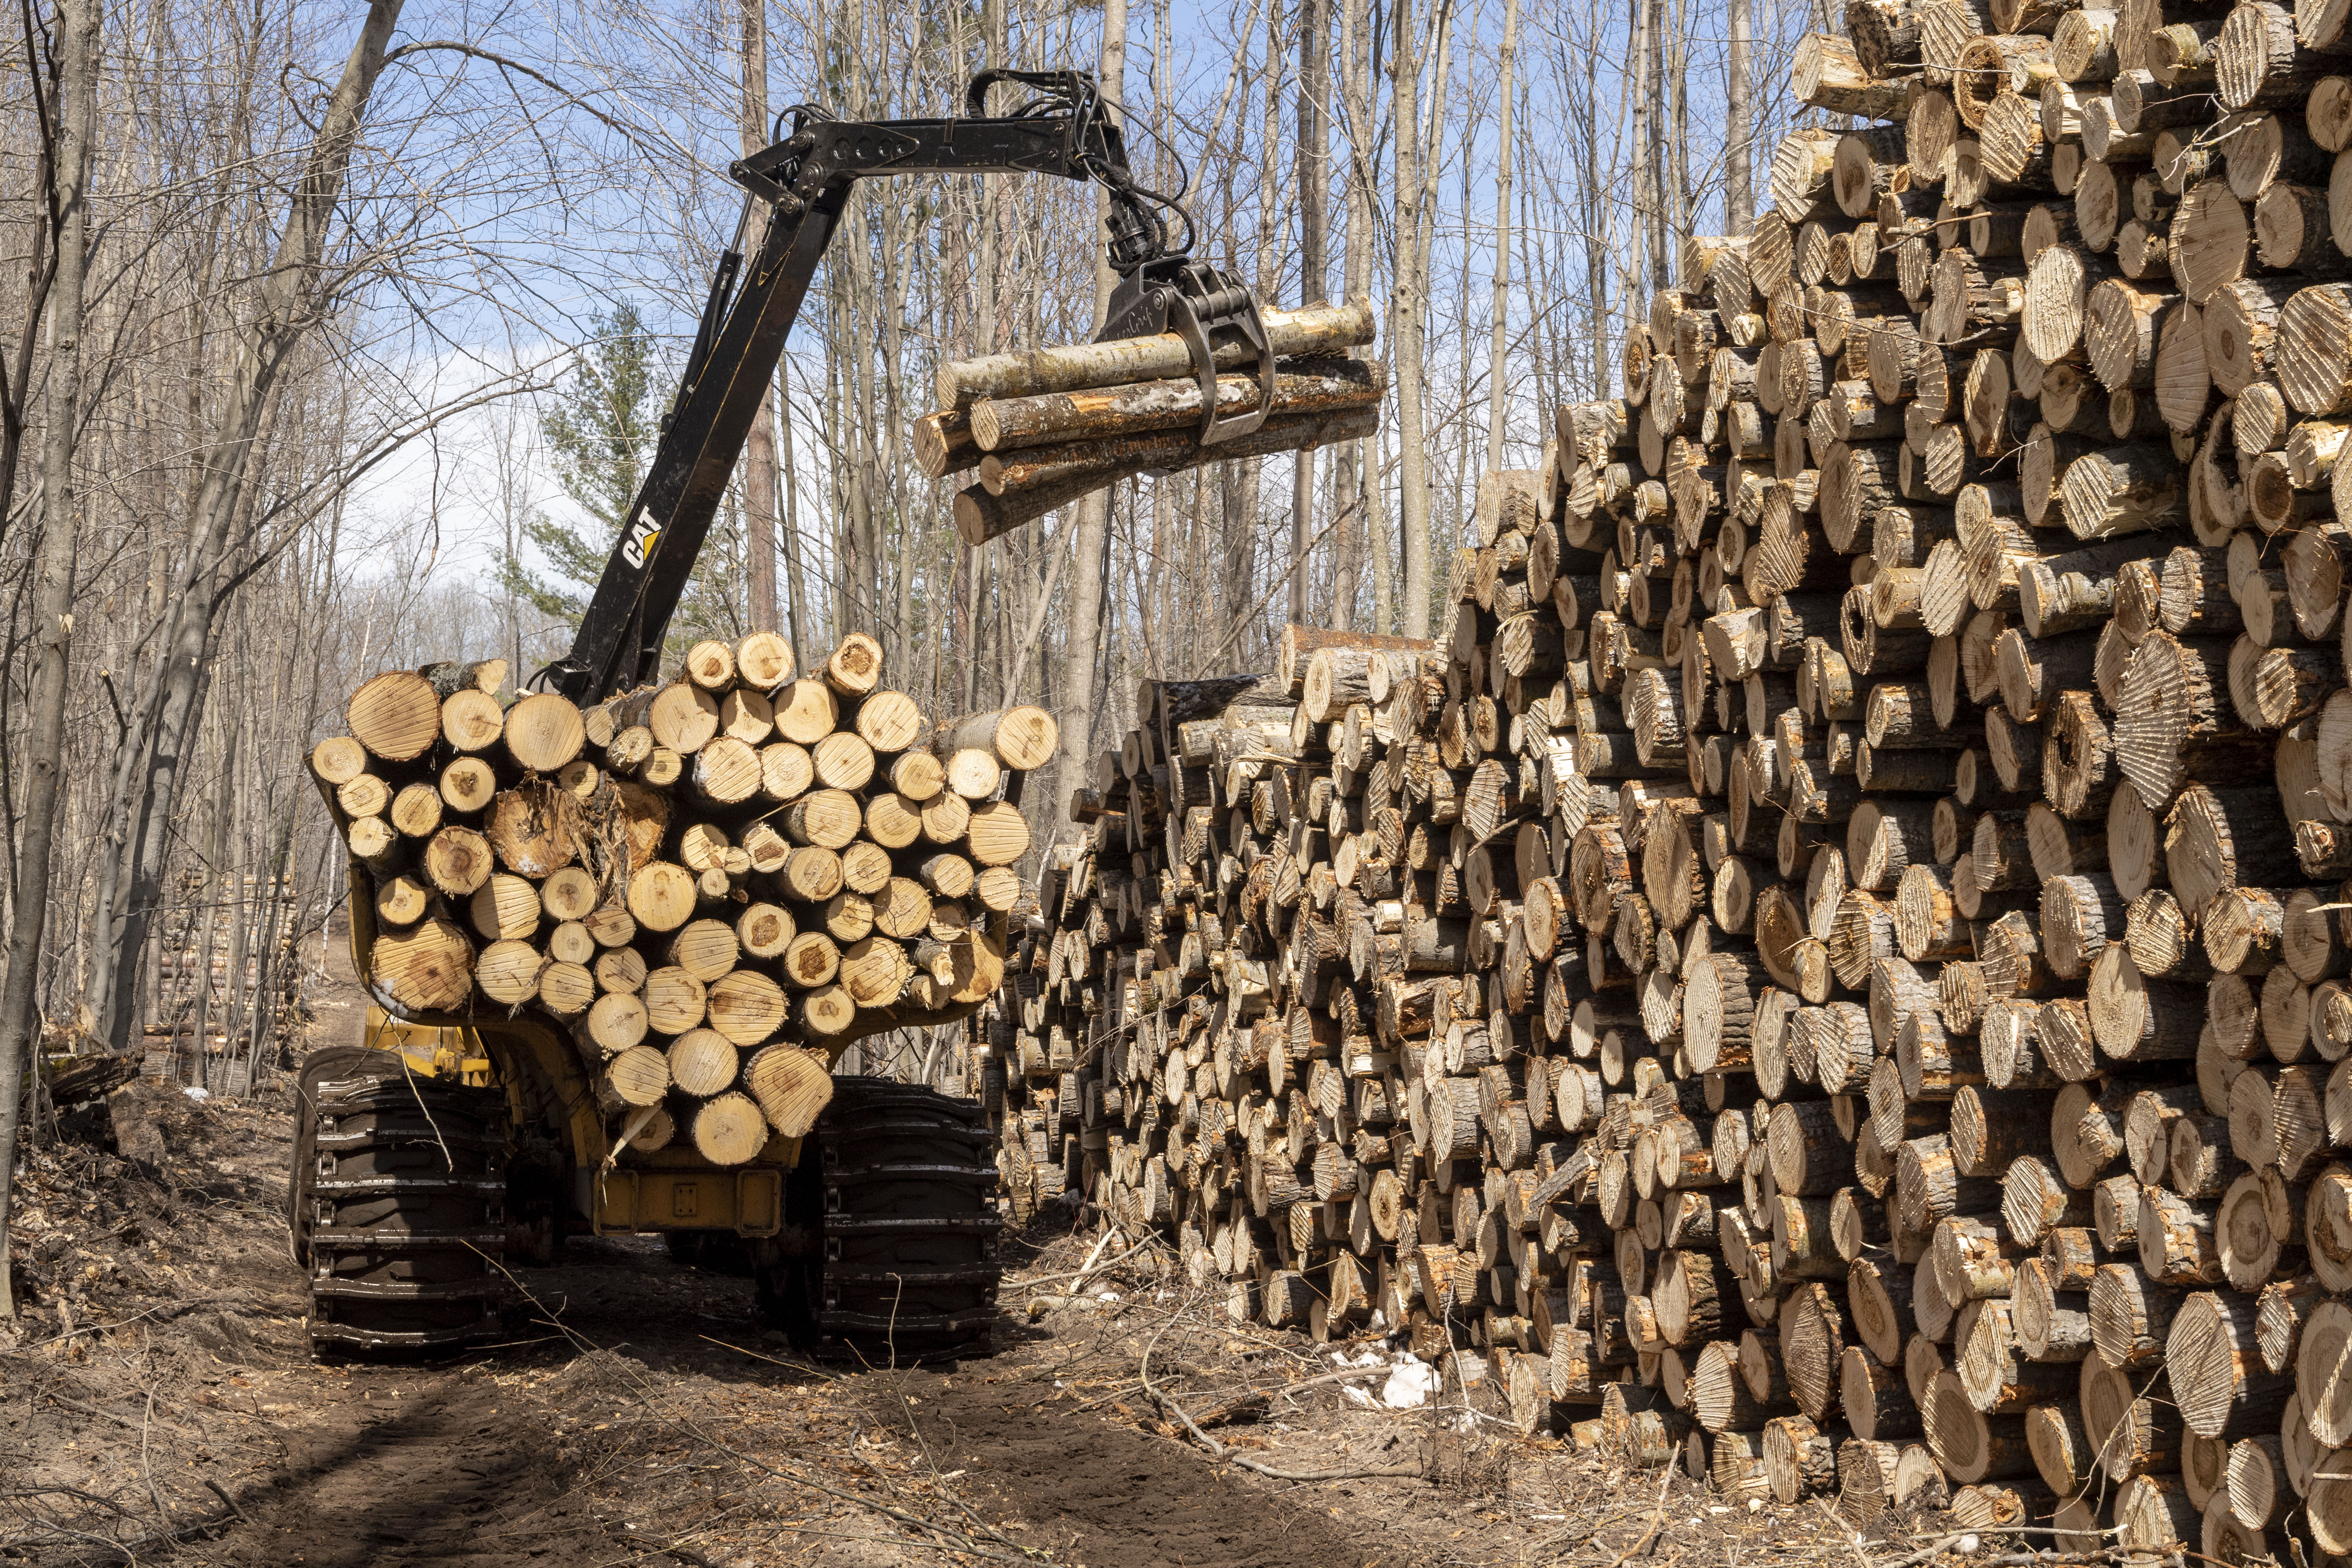 A machine called a forwarder stacks bigtooth aspen logs at the site of the UMBS Adaptive Aspen Management Experiment, at the U-M Biological Station near Pellston, Michigan. Photo by Roger Hart, University of Michigan Photography.